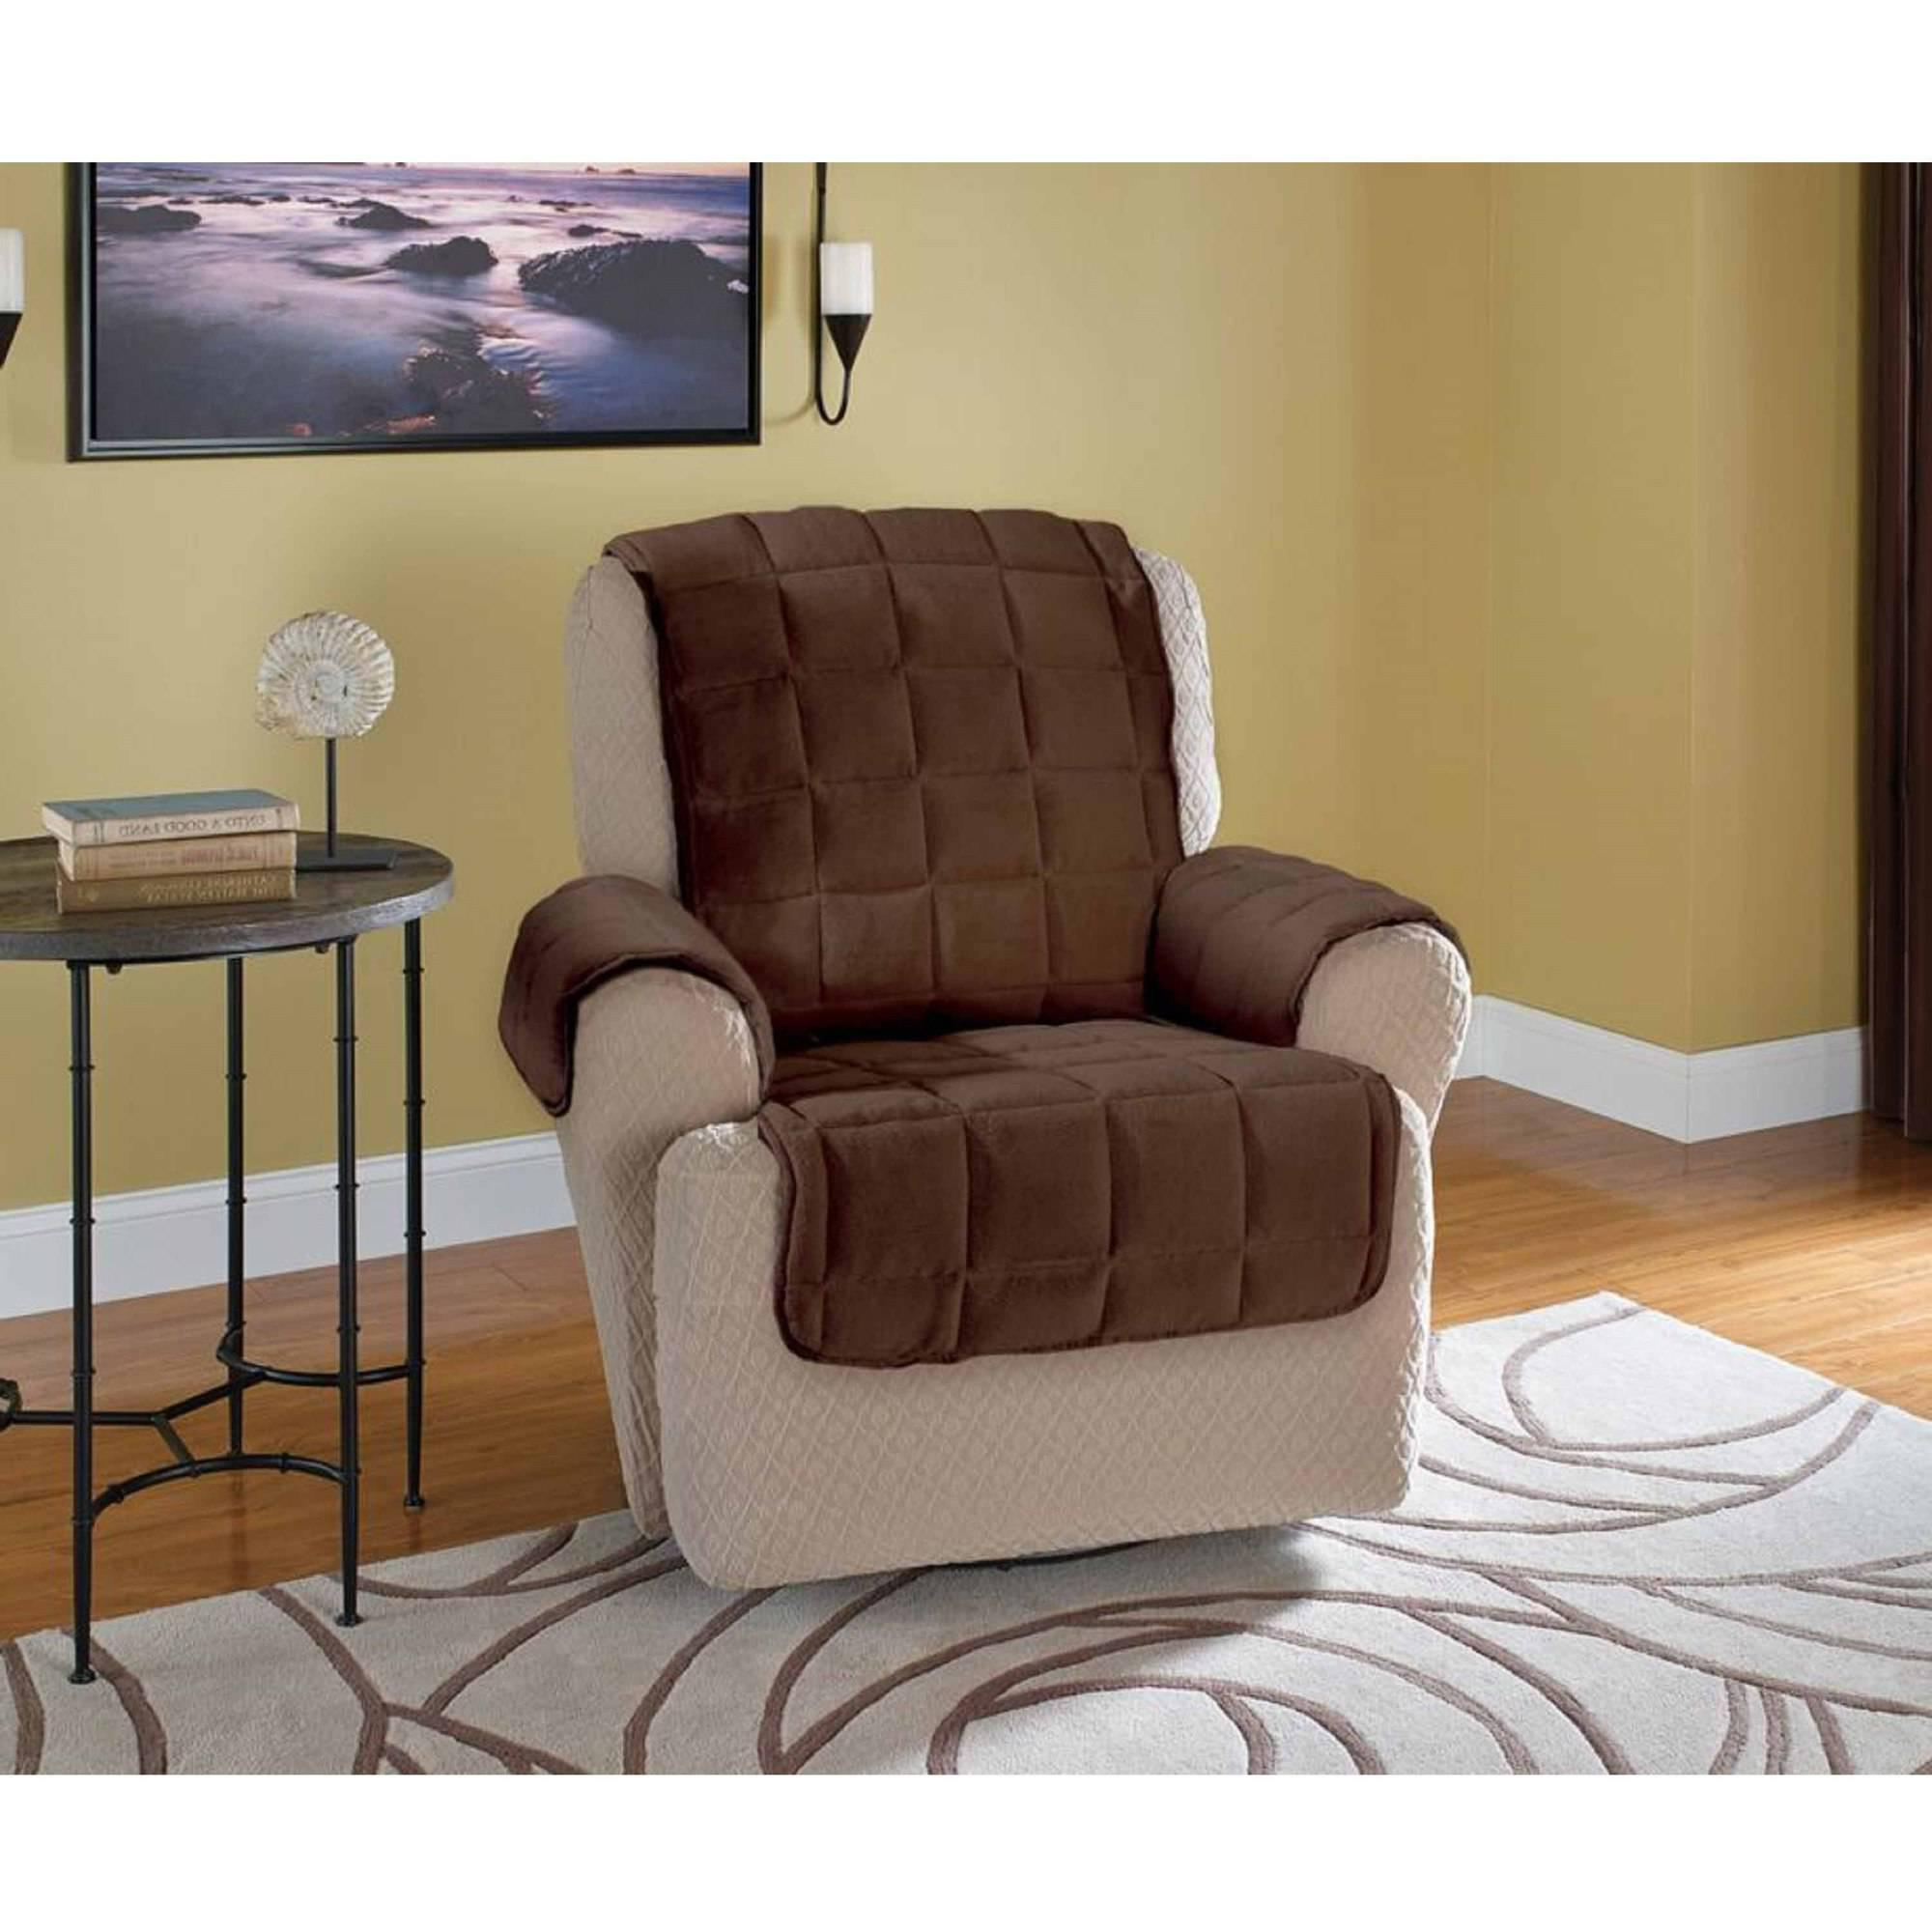 Sofas: Glamour Sofa With Recliner Covers Walmart Design Ideas For Well Known Sofa And Chair Covers (Gallery 16 of 20)